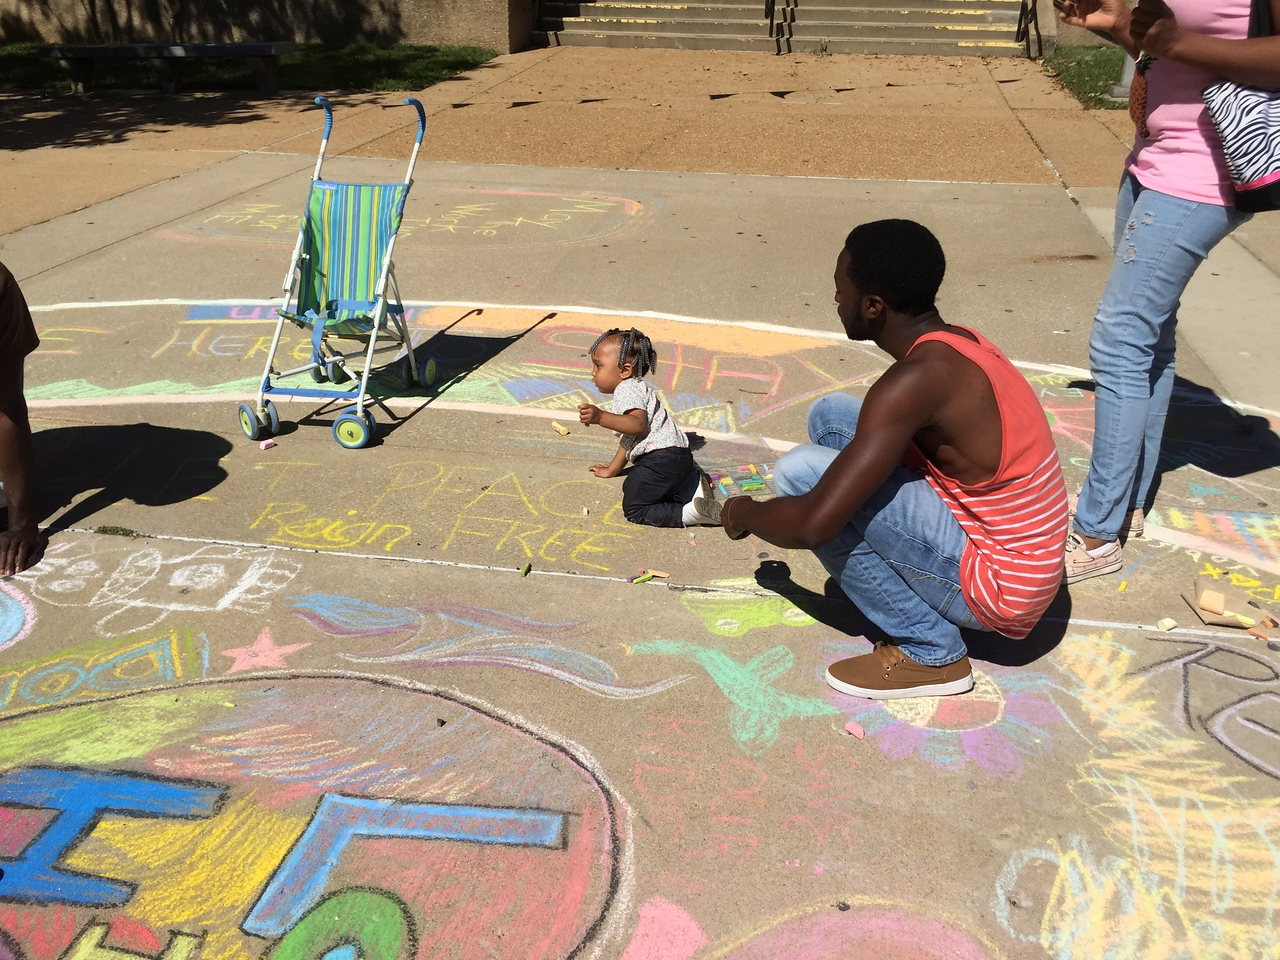 Drawing FergUSon Together: A Vision of Peace; Sept. 18-19, 2015 Social Justice Summit and Community CHALK4PEACE Celebration   St. Louis Community College, Florissant Valley Ferguson, Missouri